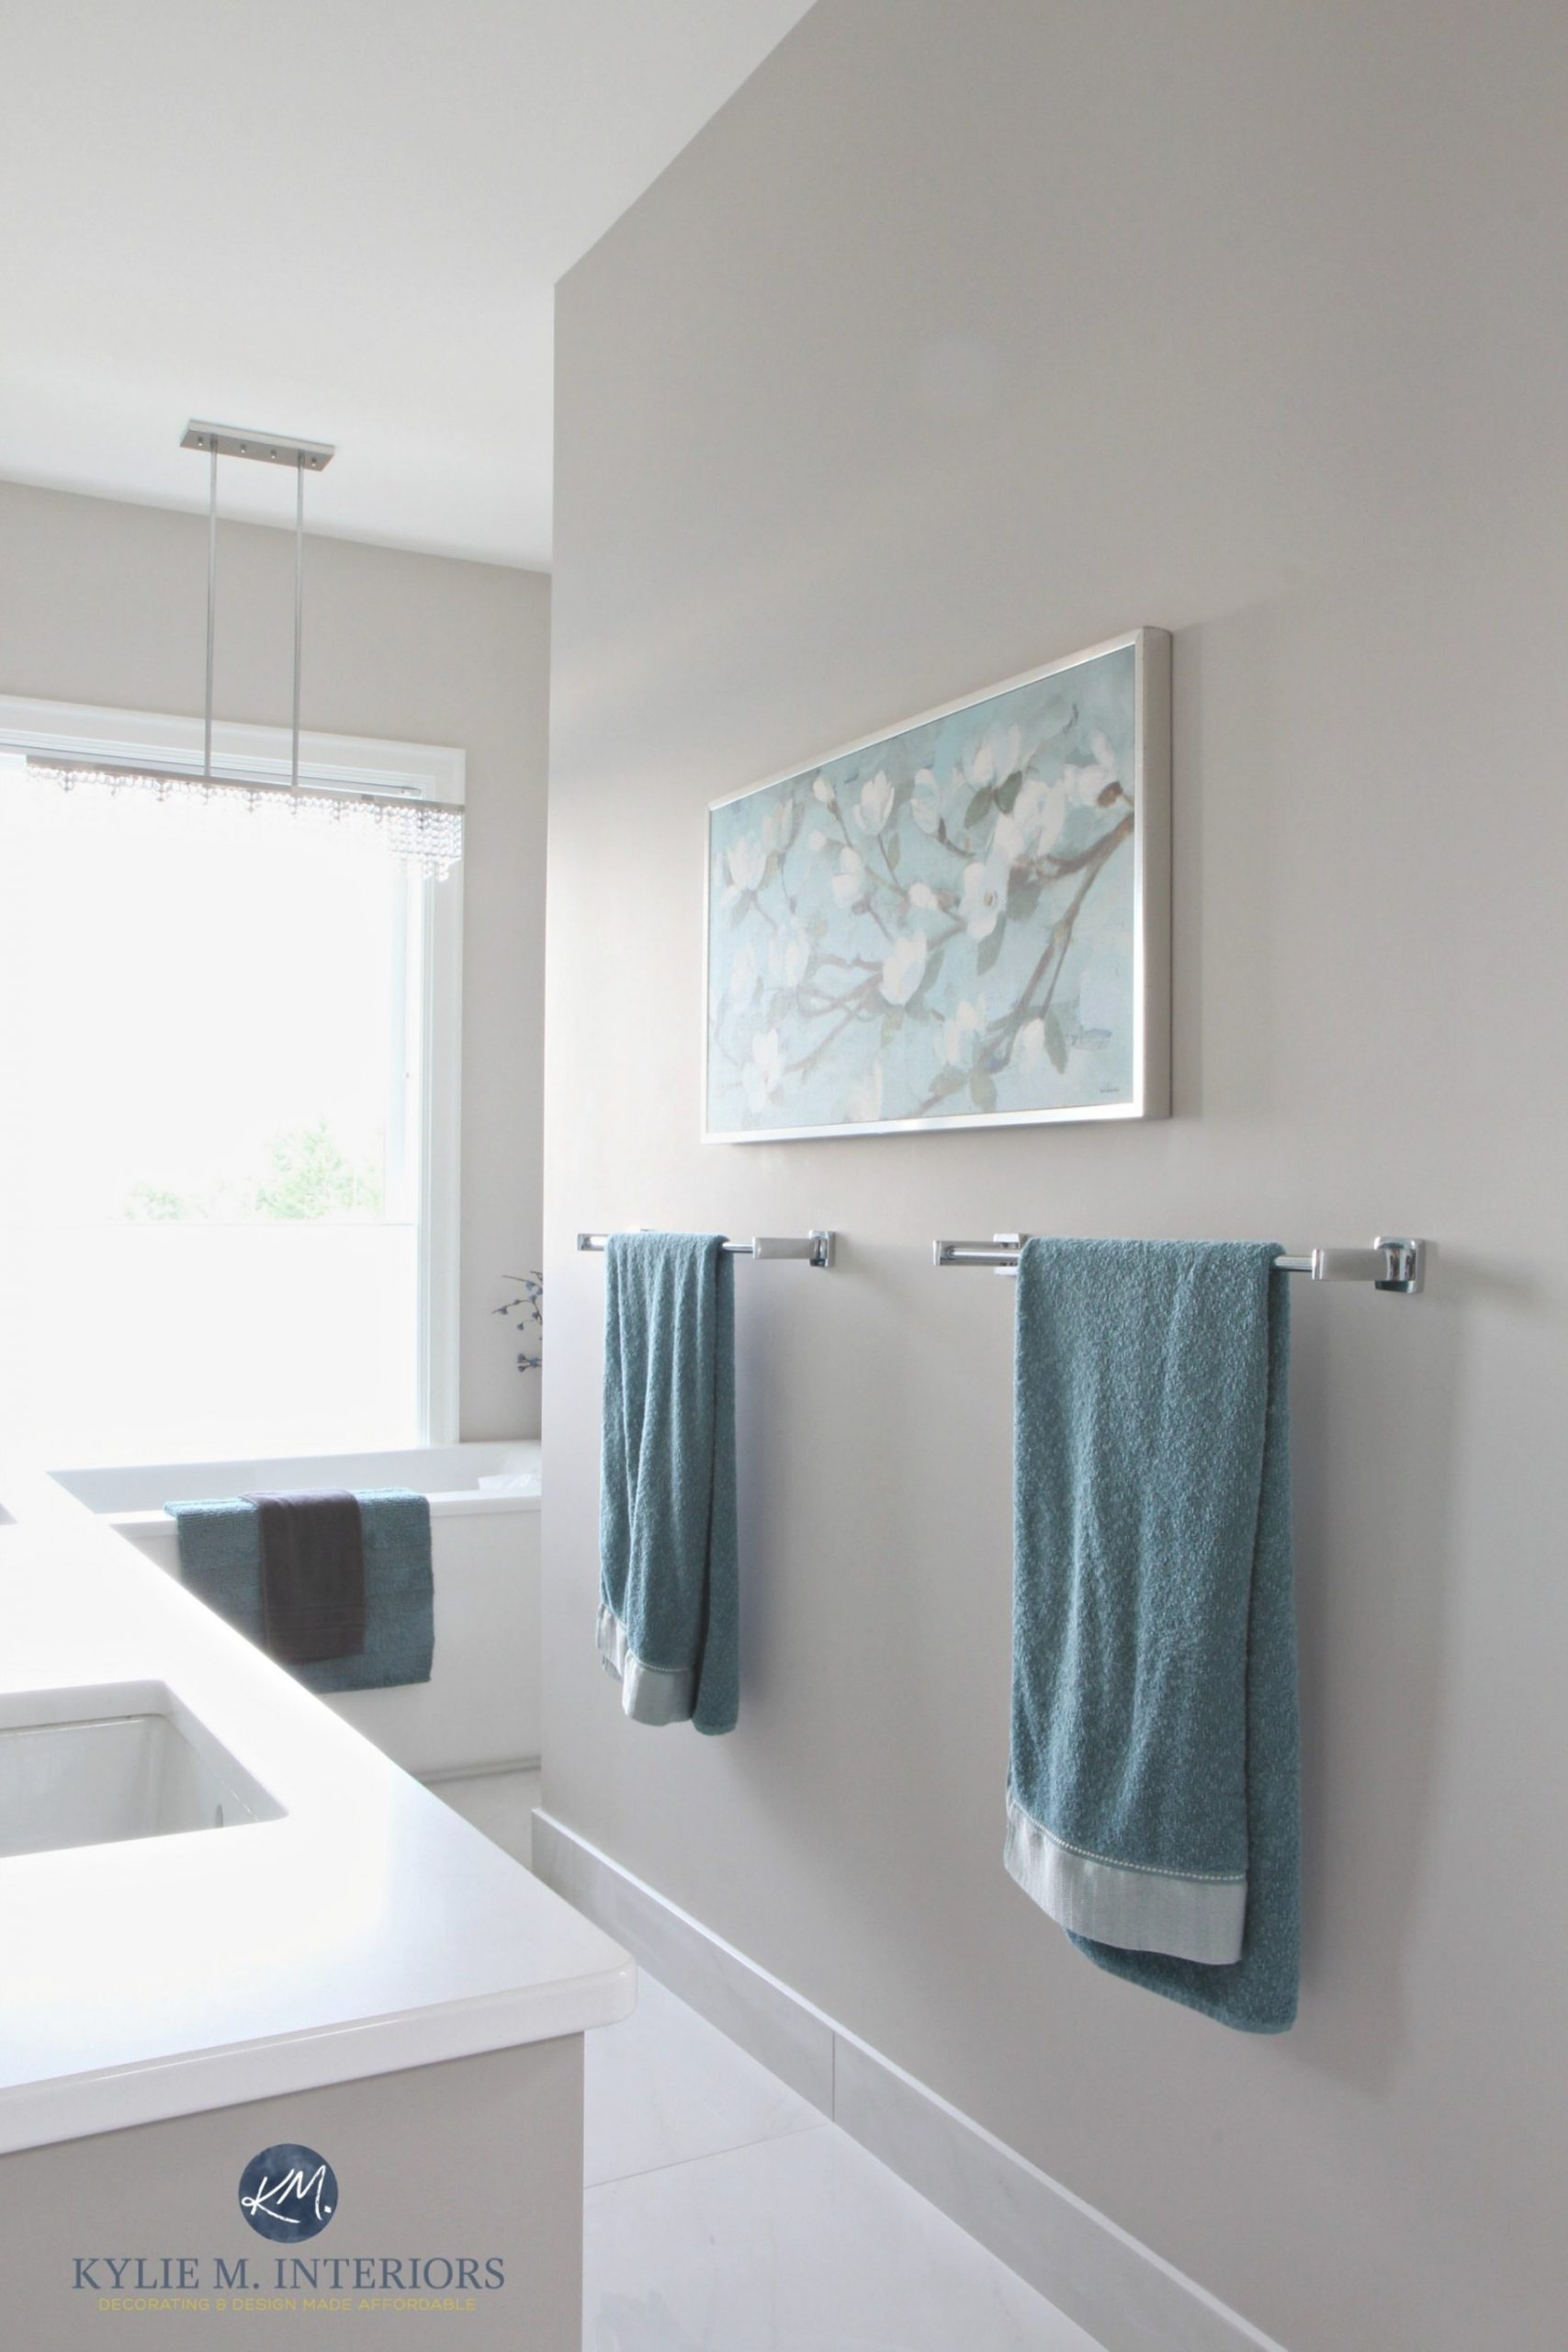 Bathroom-With-Marble-Floor-Teal-Accents-Freestanding-Tub throughout Balboa Mist Benjamin Moore